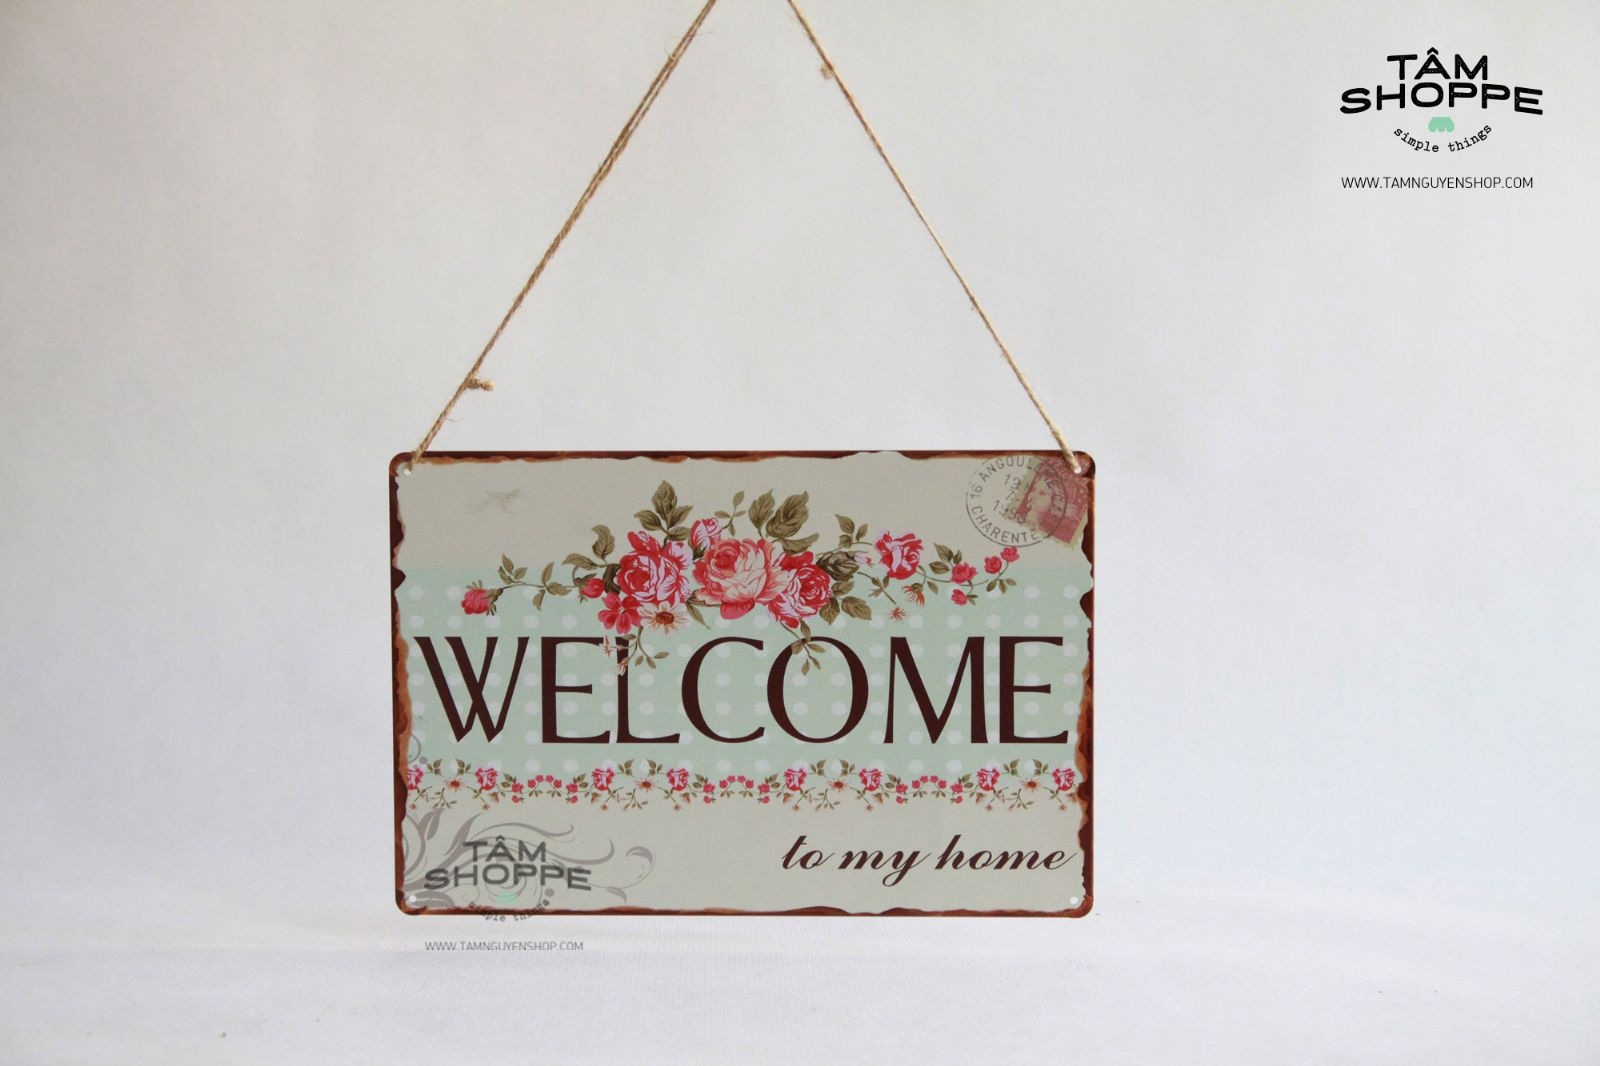 Bảng treo cửa WELCOME bằng thiếc Vintage